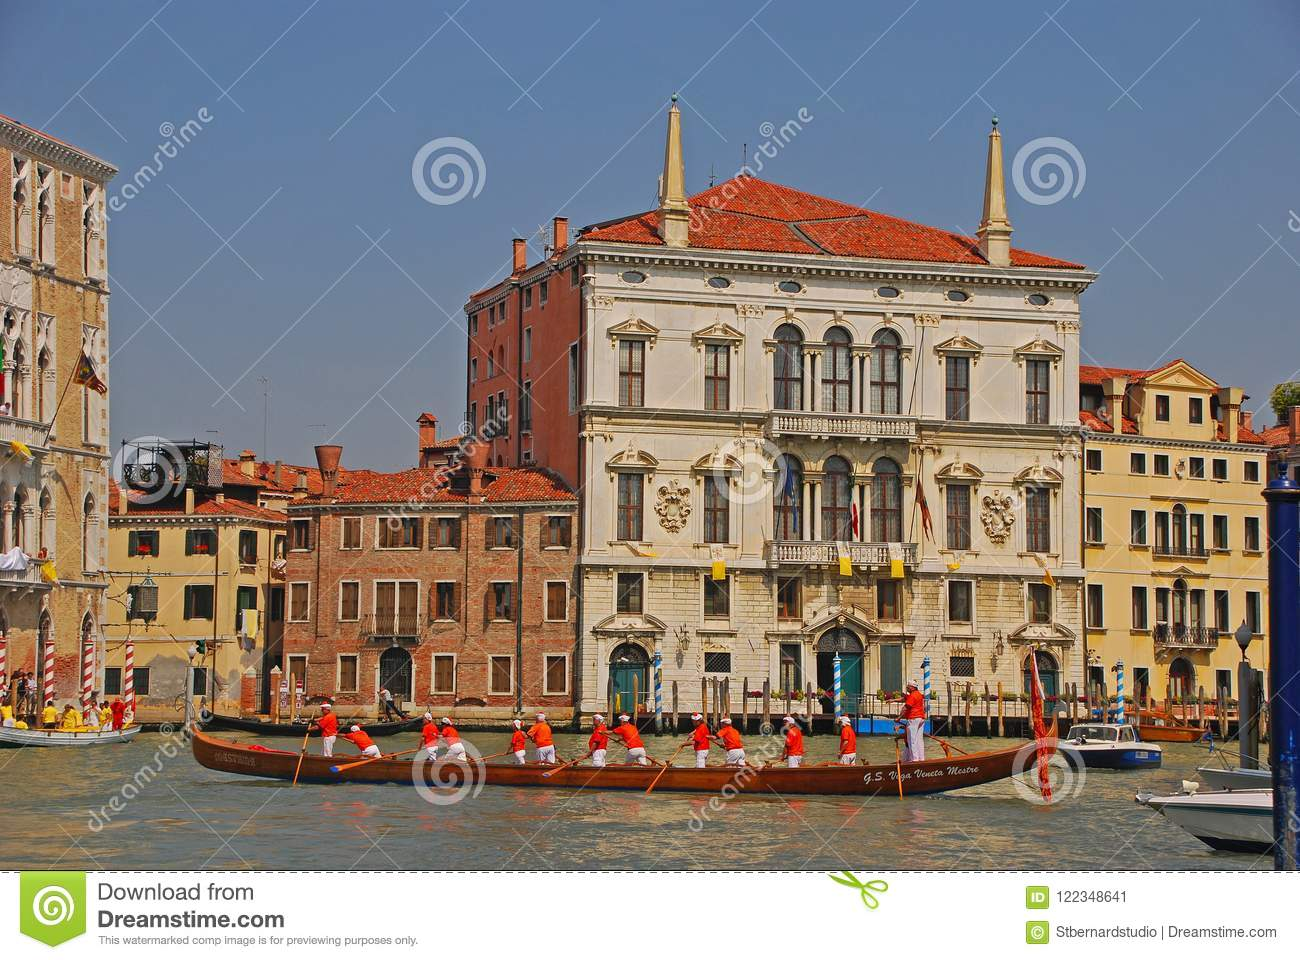 A group of elderly boat rowers with a very long boat taking a rest during the Vogalonga Regatta festival in Venice, Italy